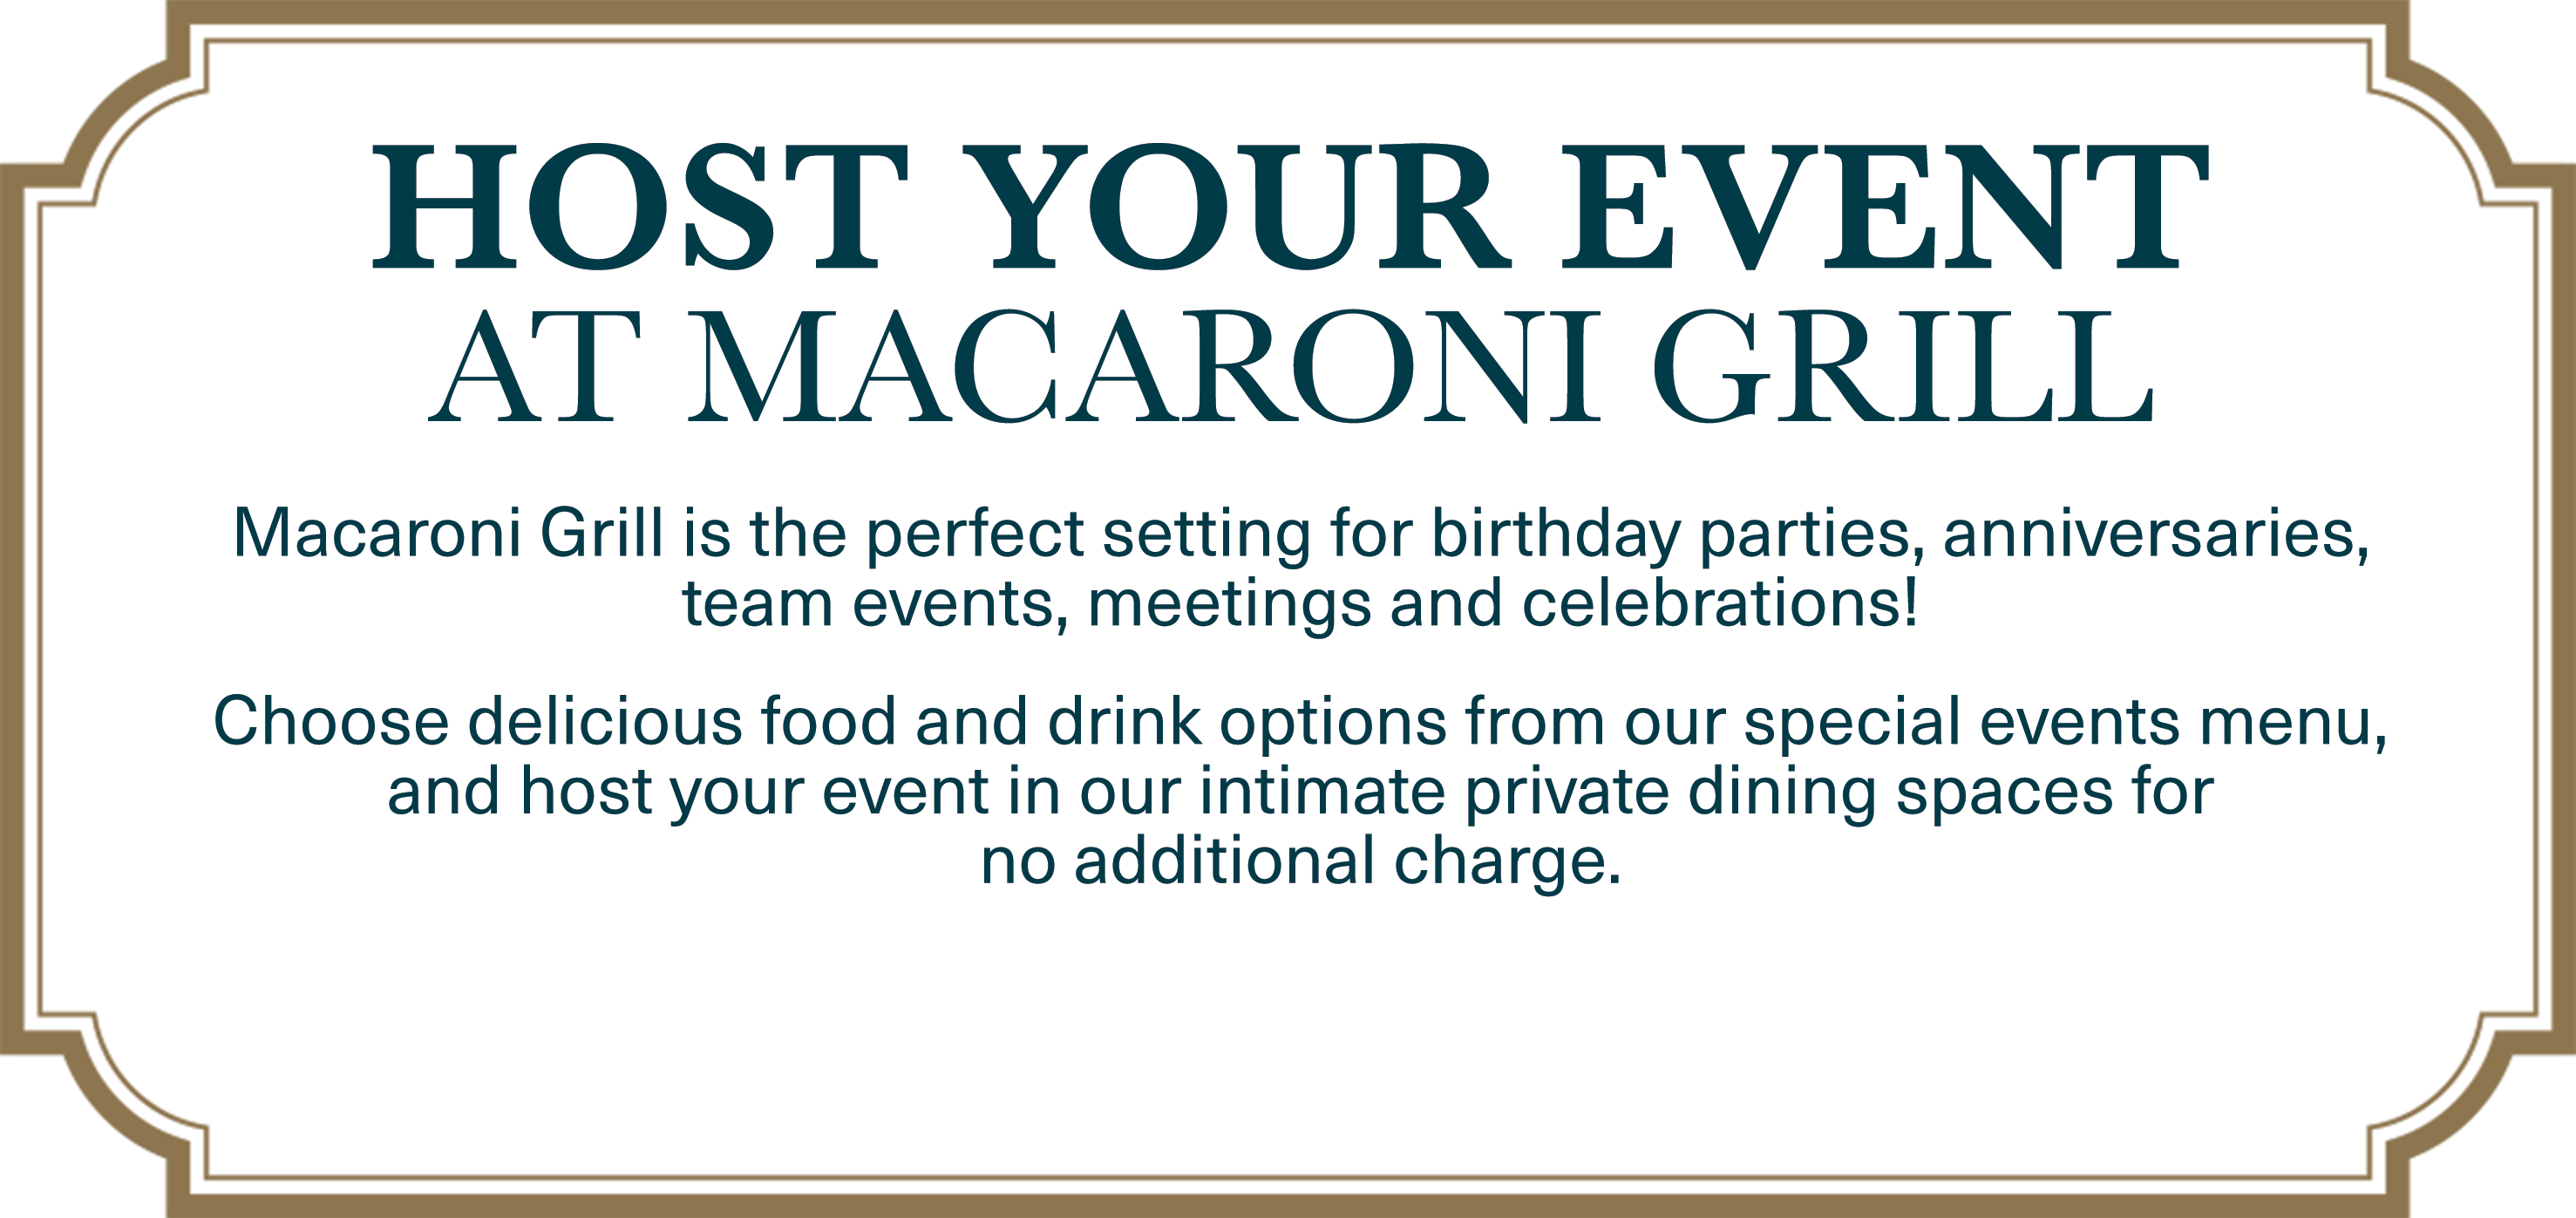 Host Your Event at Macaroni Grill. Macaroni Grill is the perfect setting for birthday parties, anniversaries, team events, meetings and celebrations! Choose delicious food and drink options from our special events menu, and host your event in our intimate private dining spaces forno additional charge.